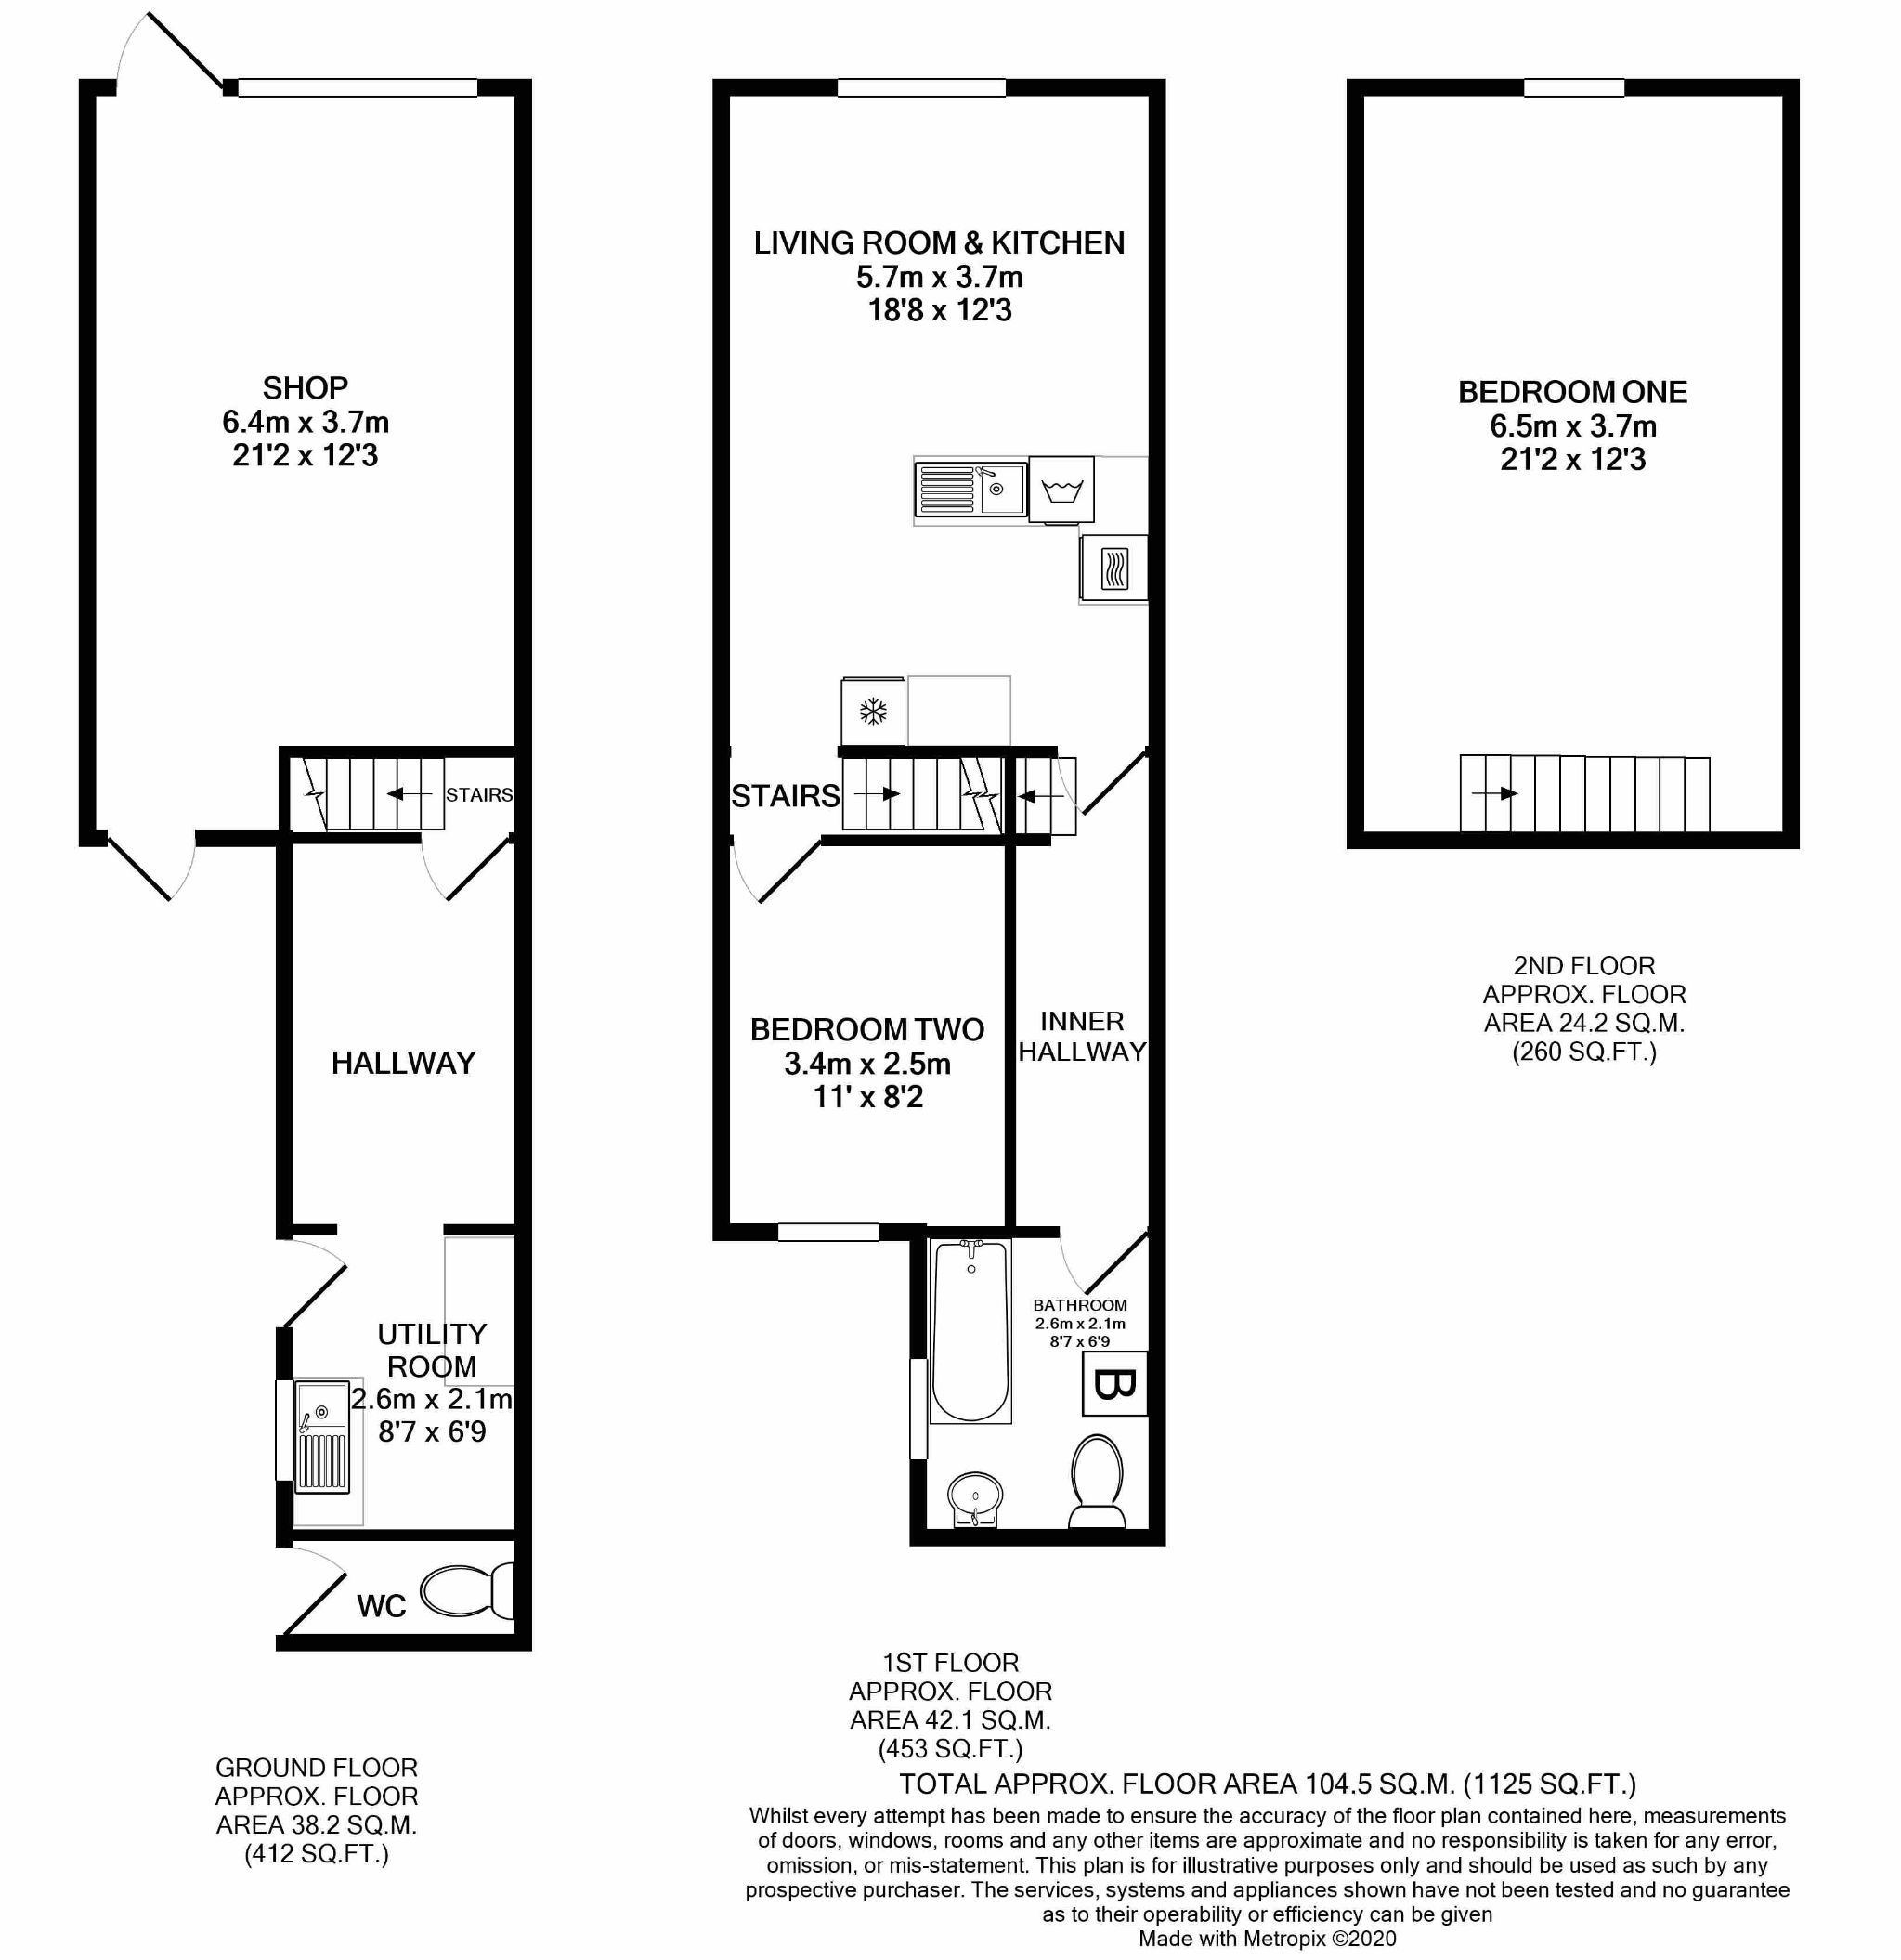 Commercial Property For Sale - Floorplan 1